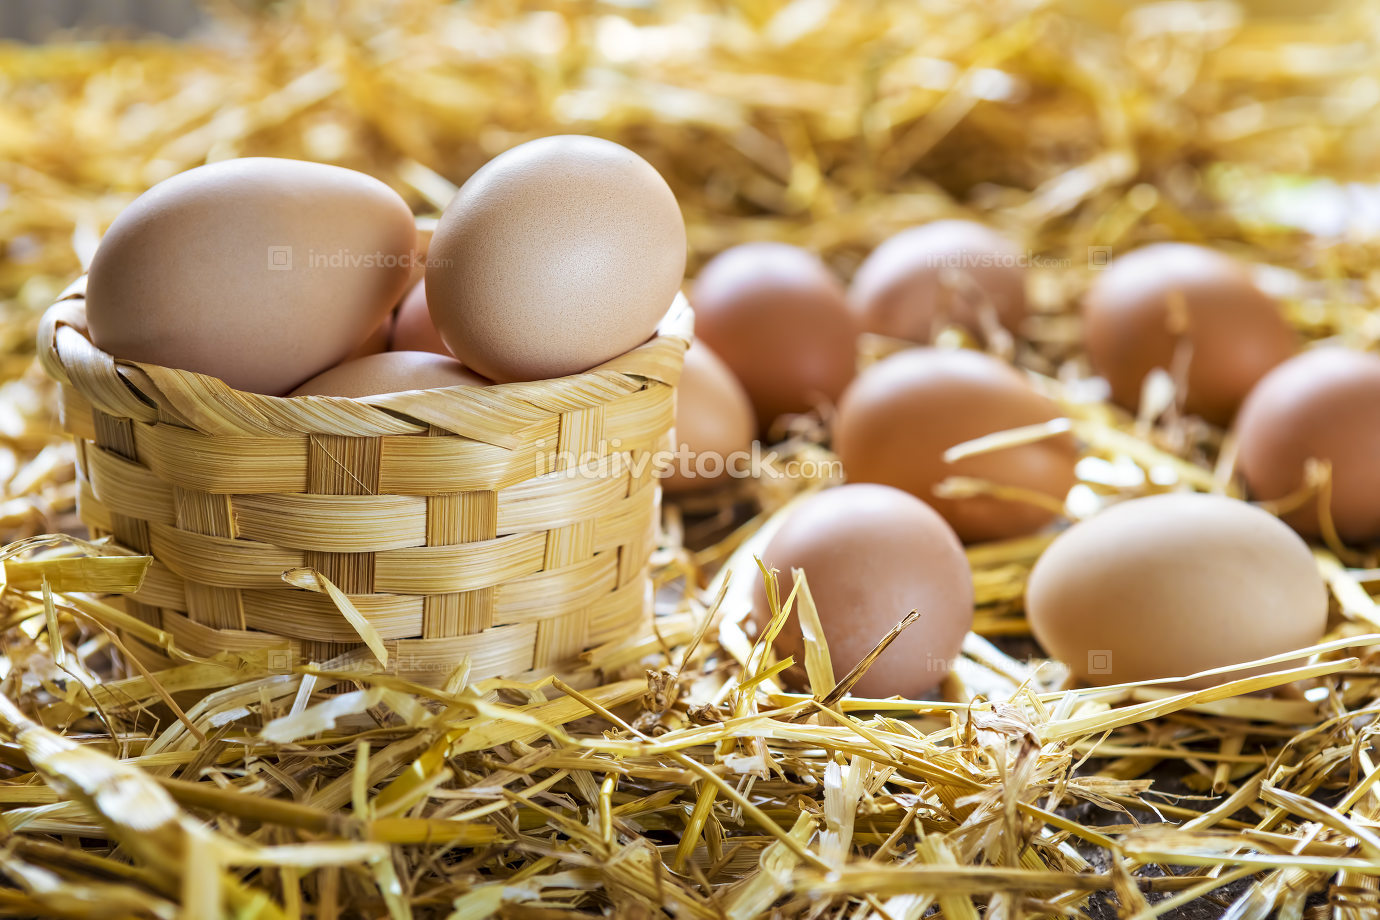 Fresh eggs in nest on straw at farm